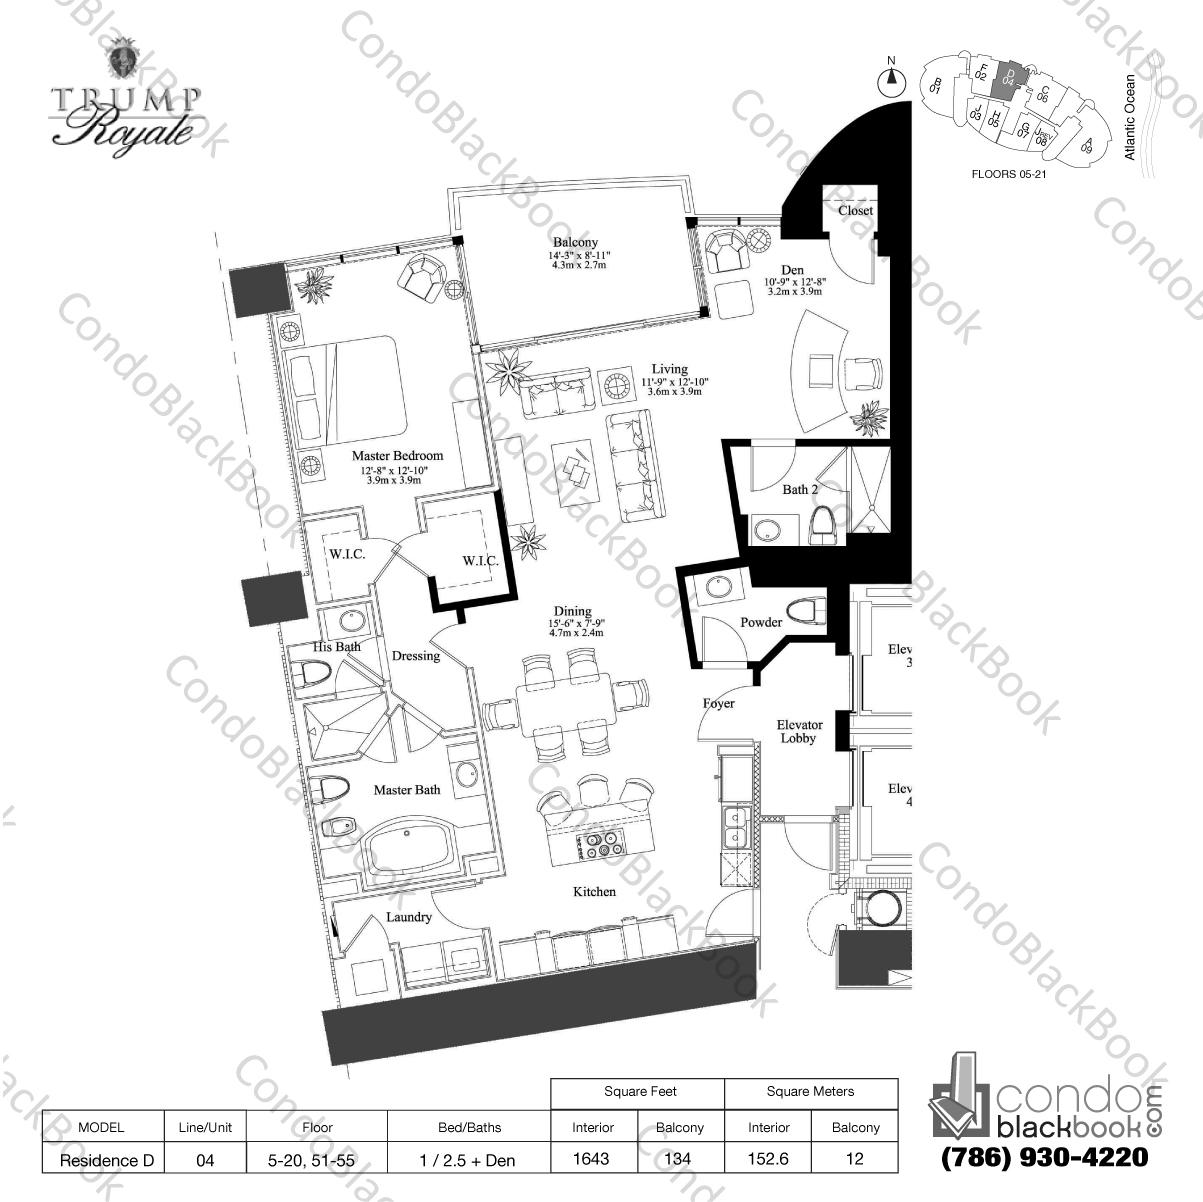 Floor plan for Trump Royale Sunny Isles Beach, model Residence D, line 04, 1 / 2.5 + Den bedrooms, 1643 sq ft